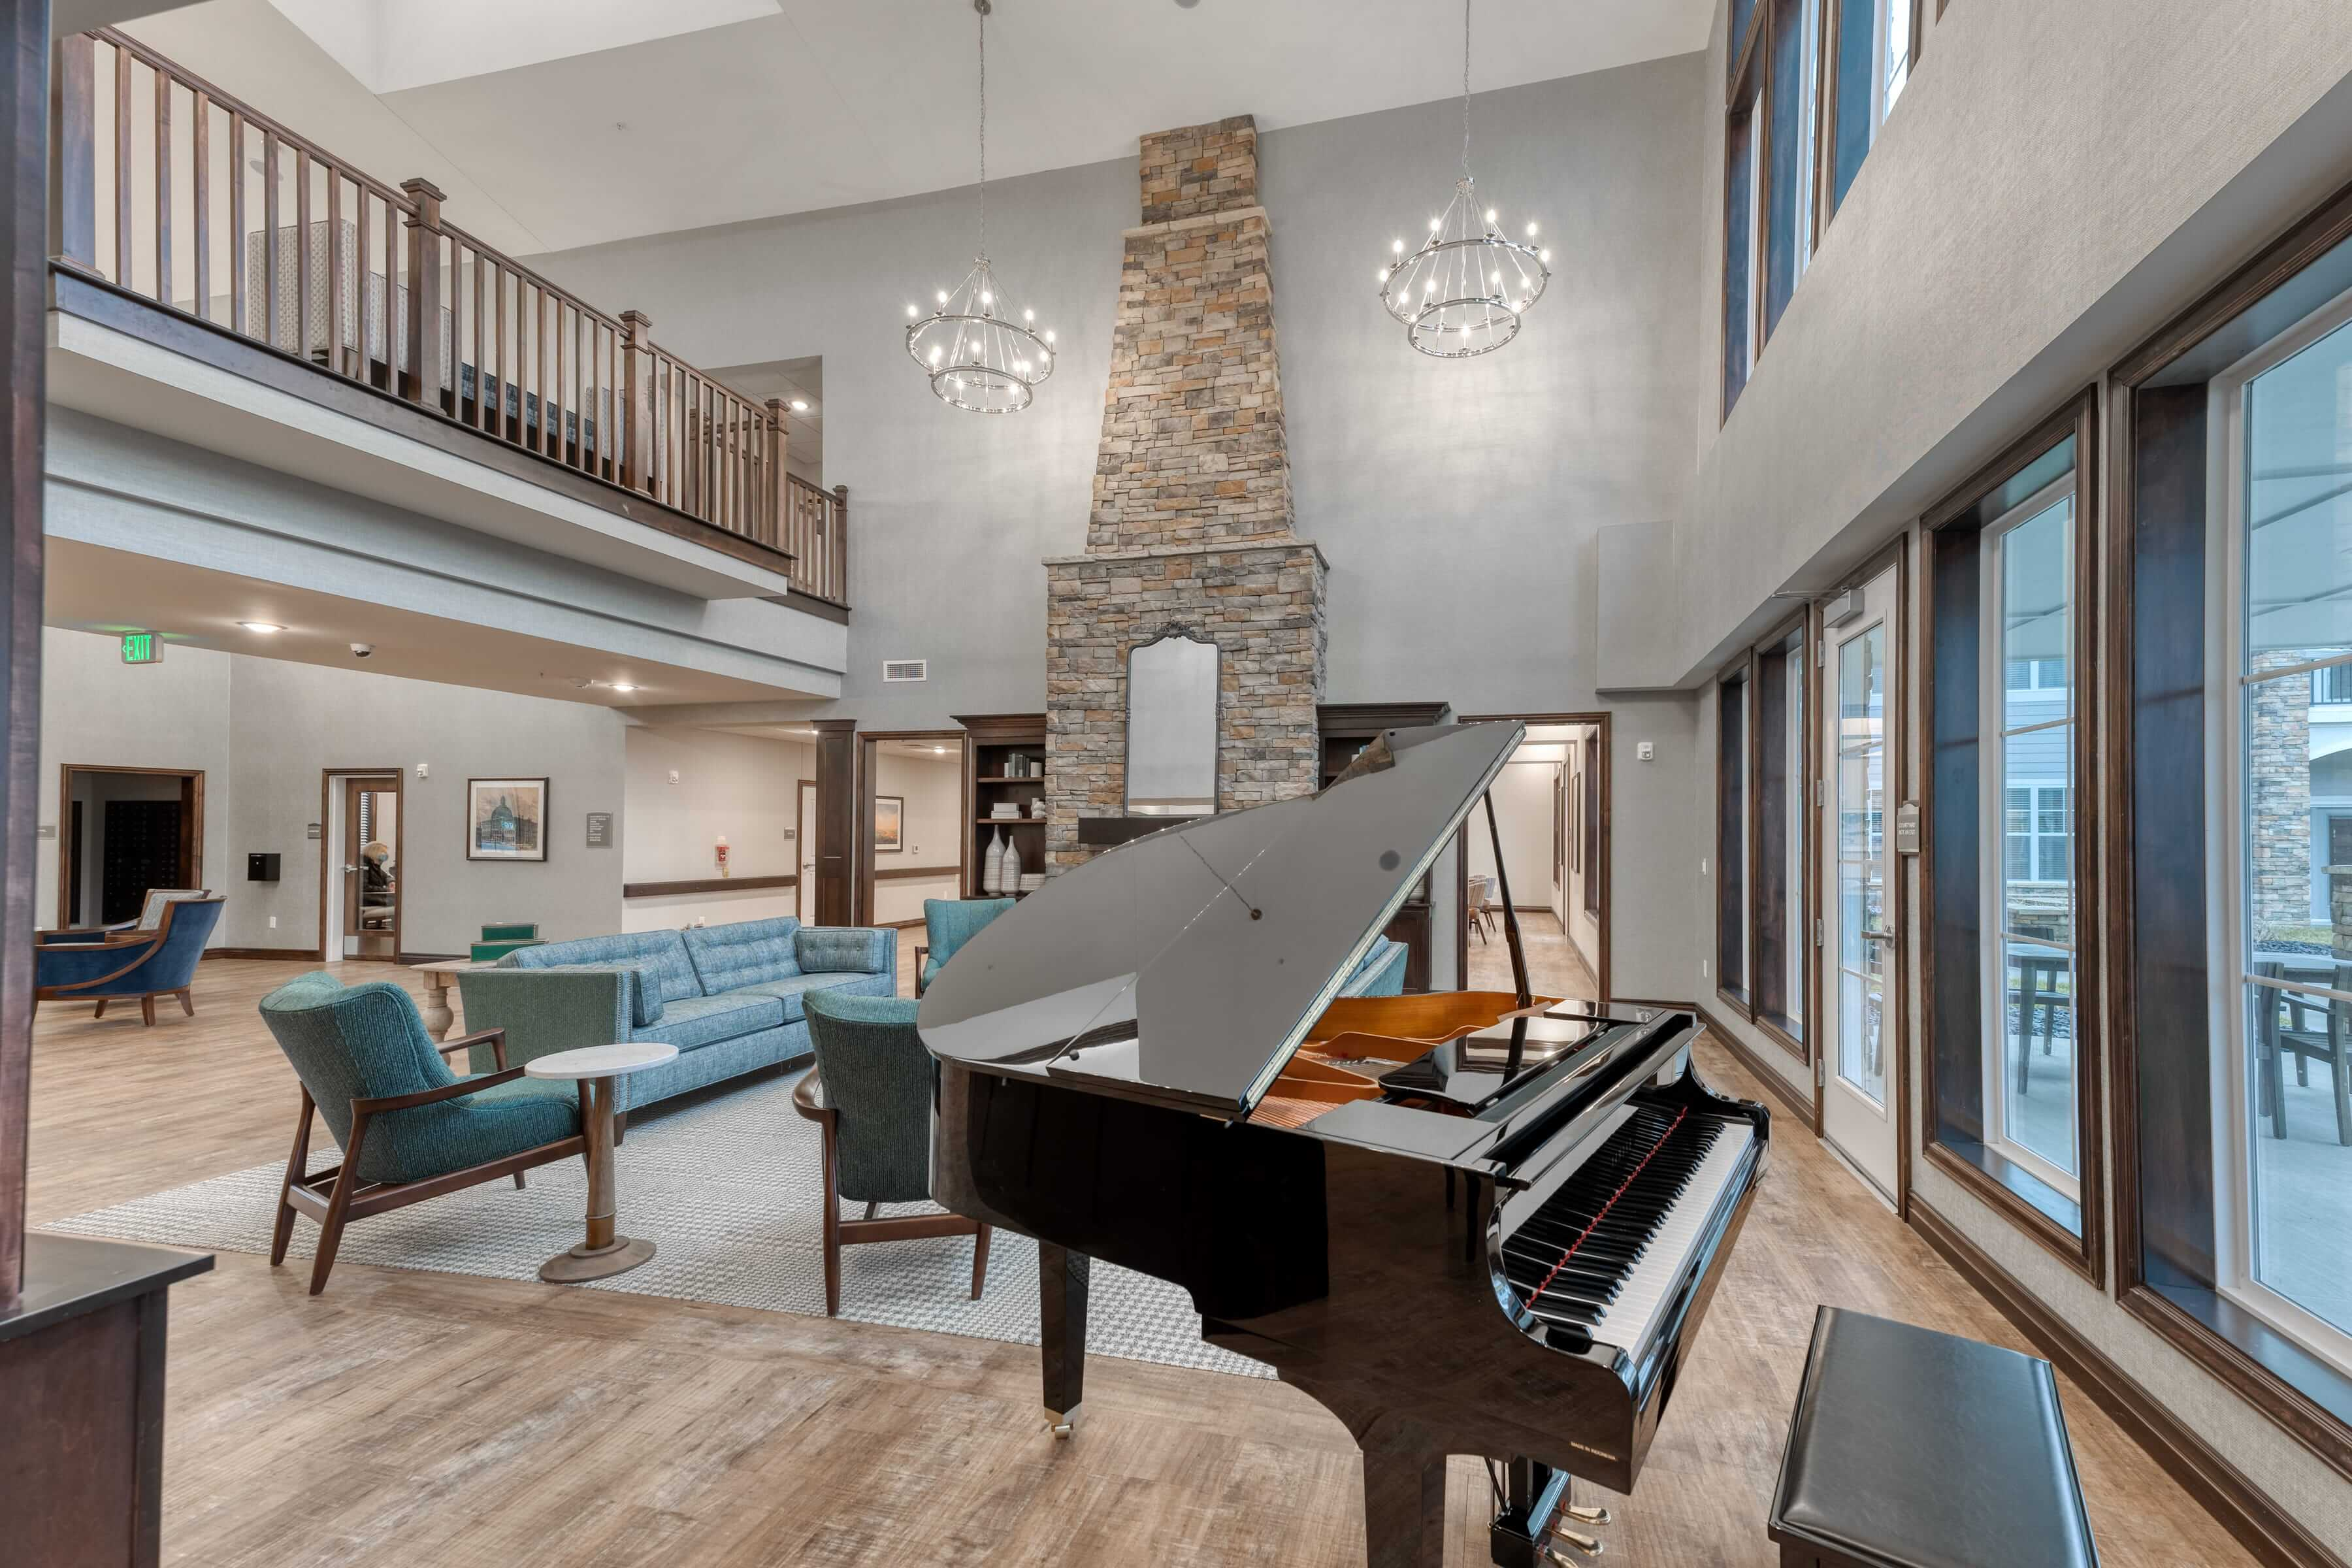 Residents can enjoy practicing piano in this open community space